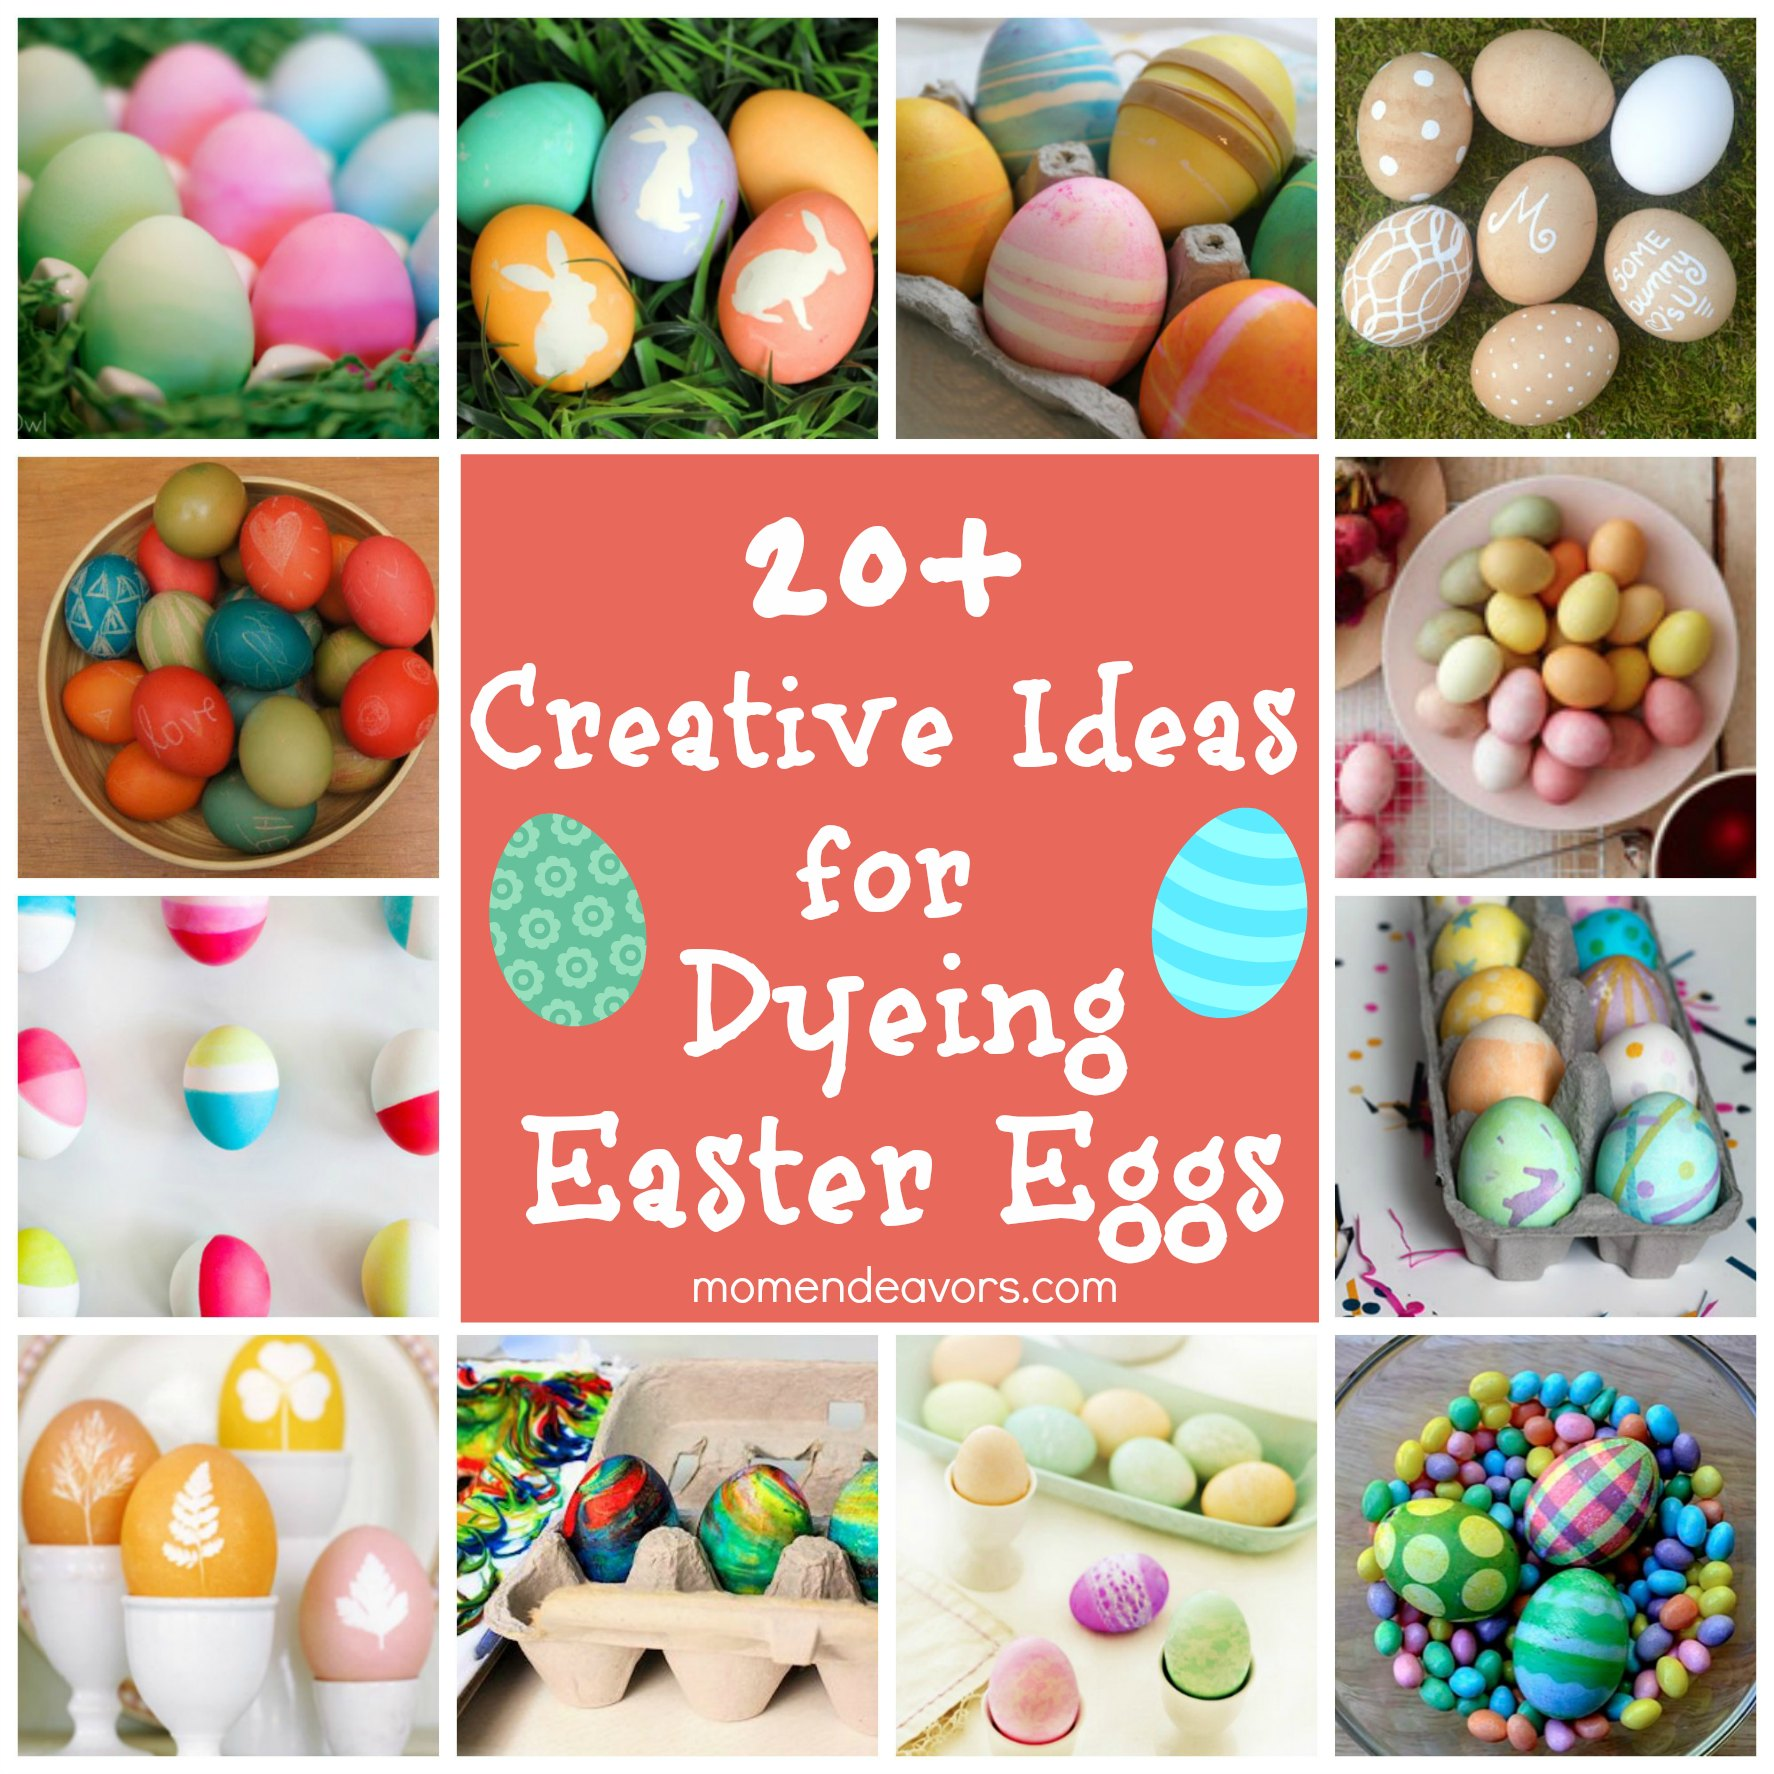 Dyeing Easter Eggs 20 Creative Ideas